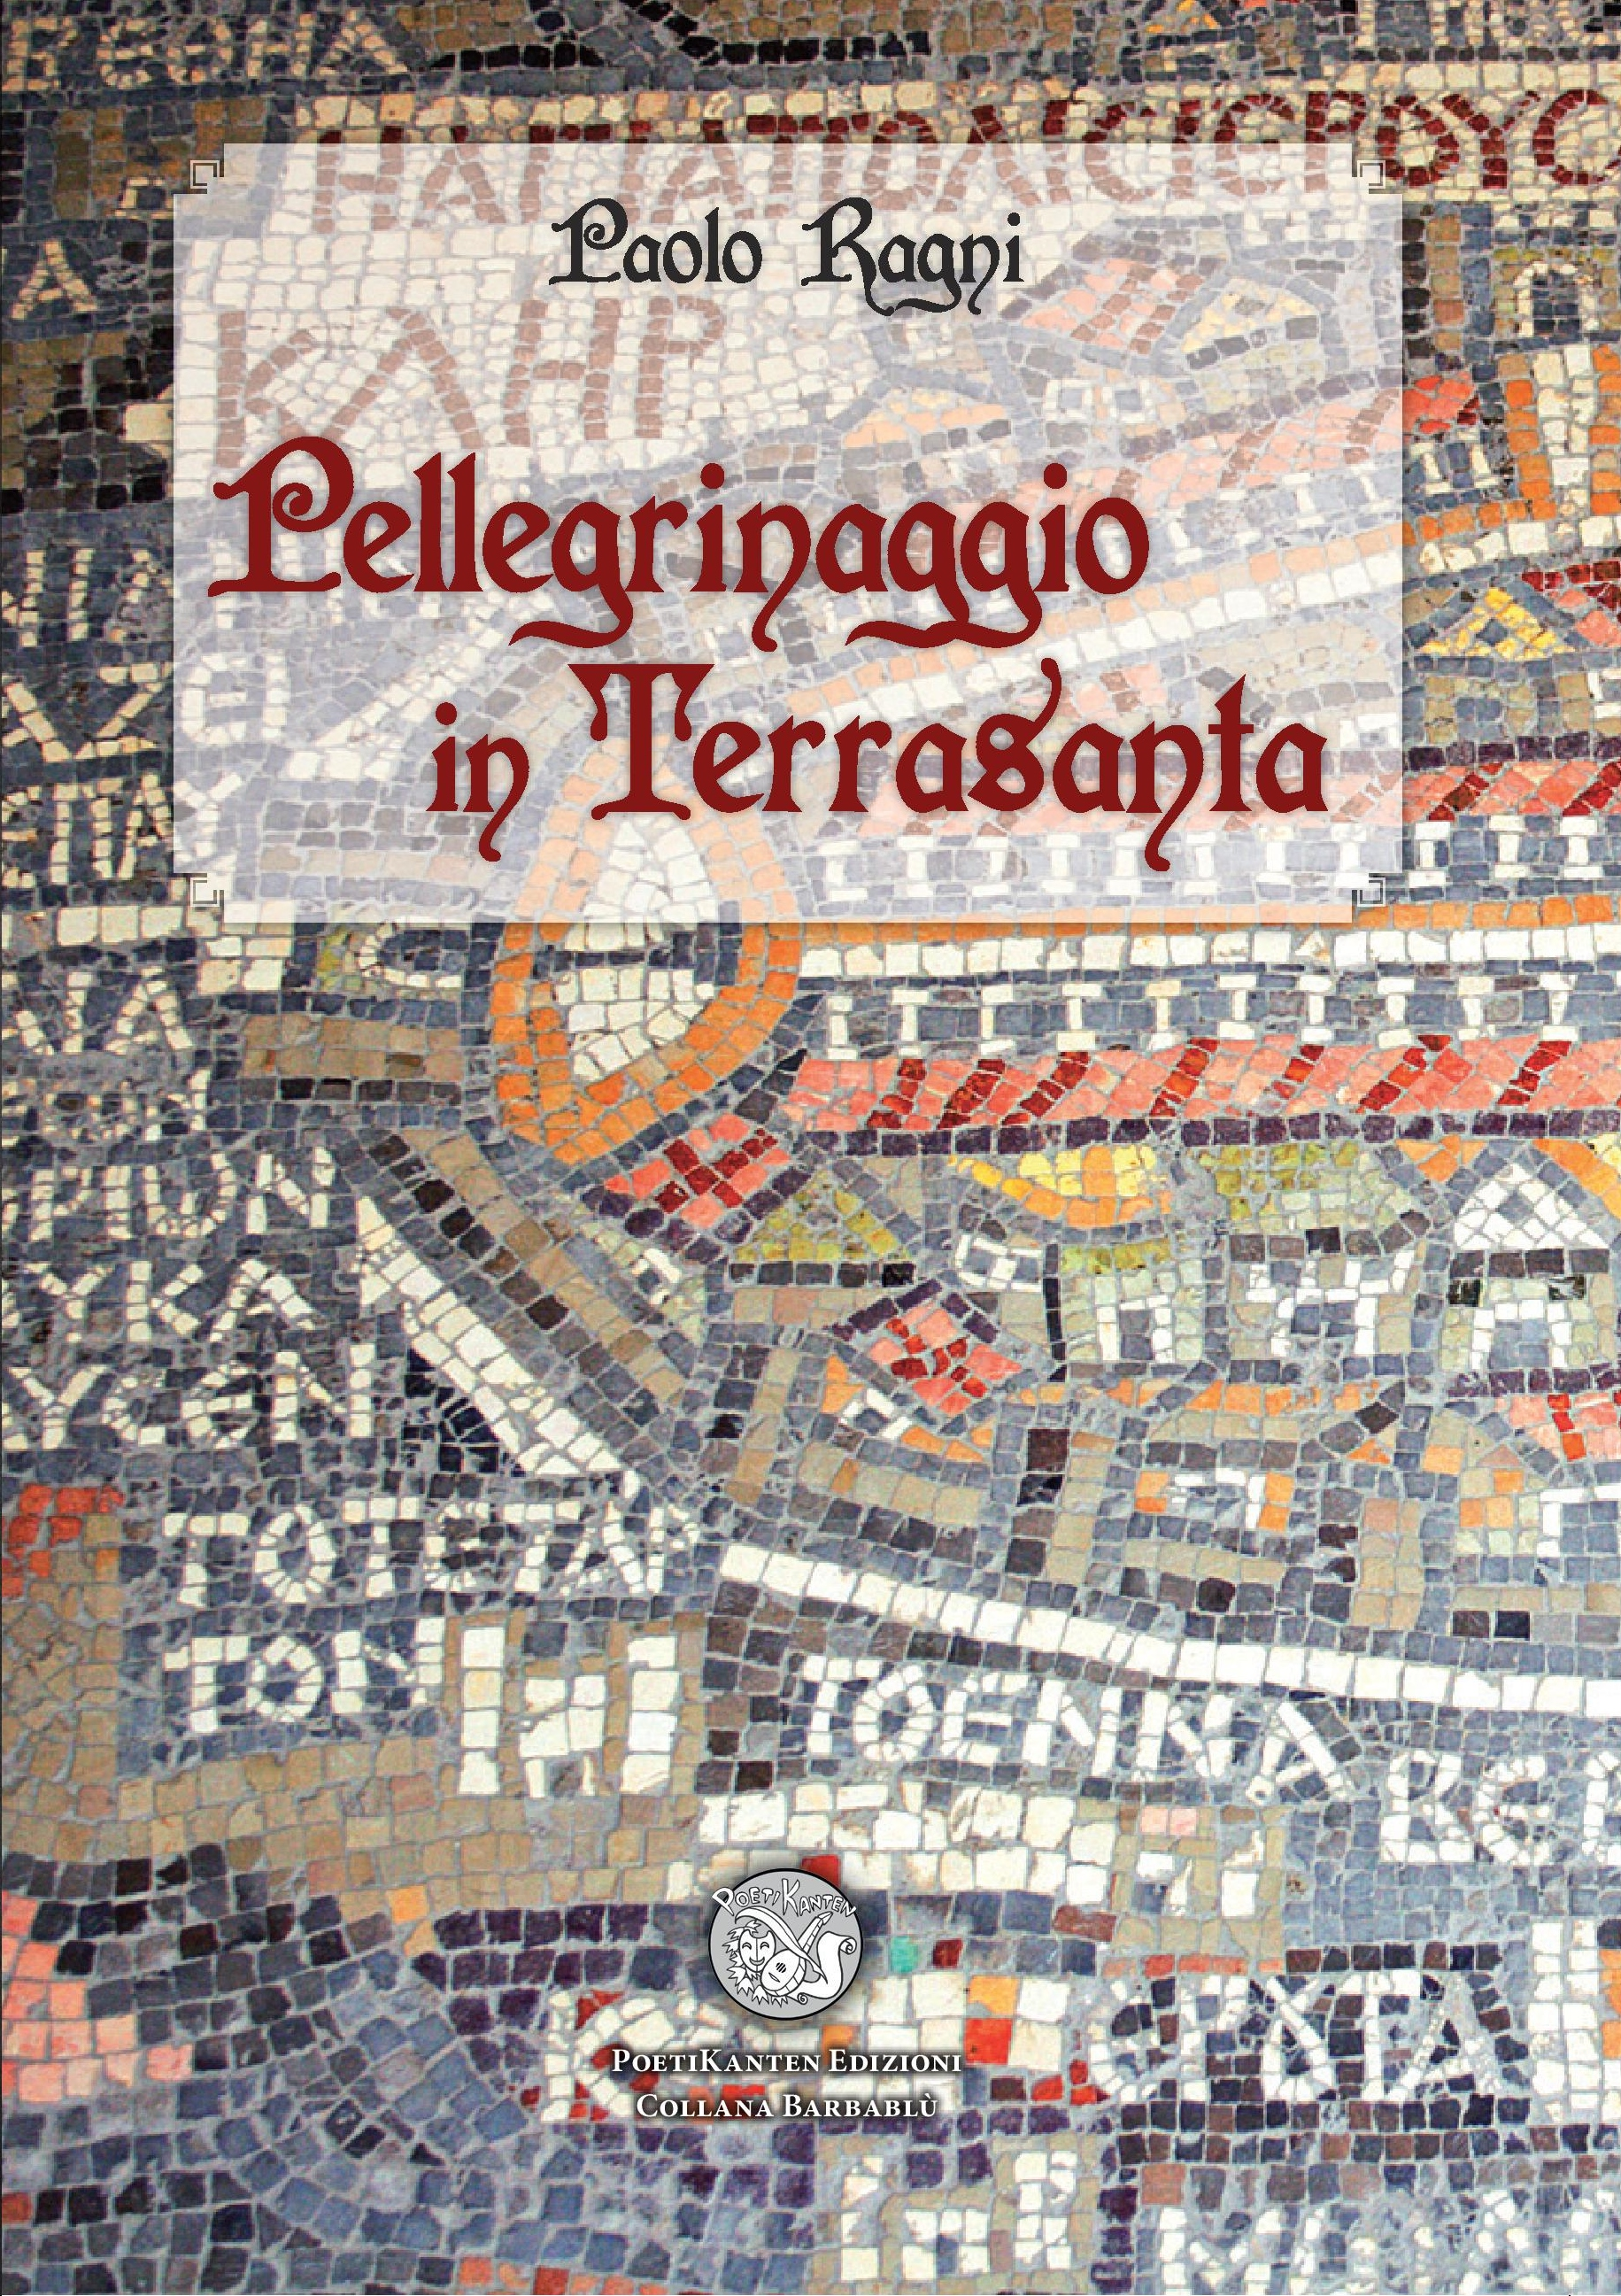 pellegrinaggio in terrasanta cover definitiva ritagliata in jpeg per isbn